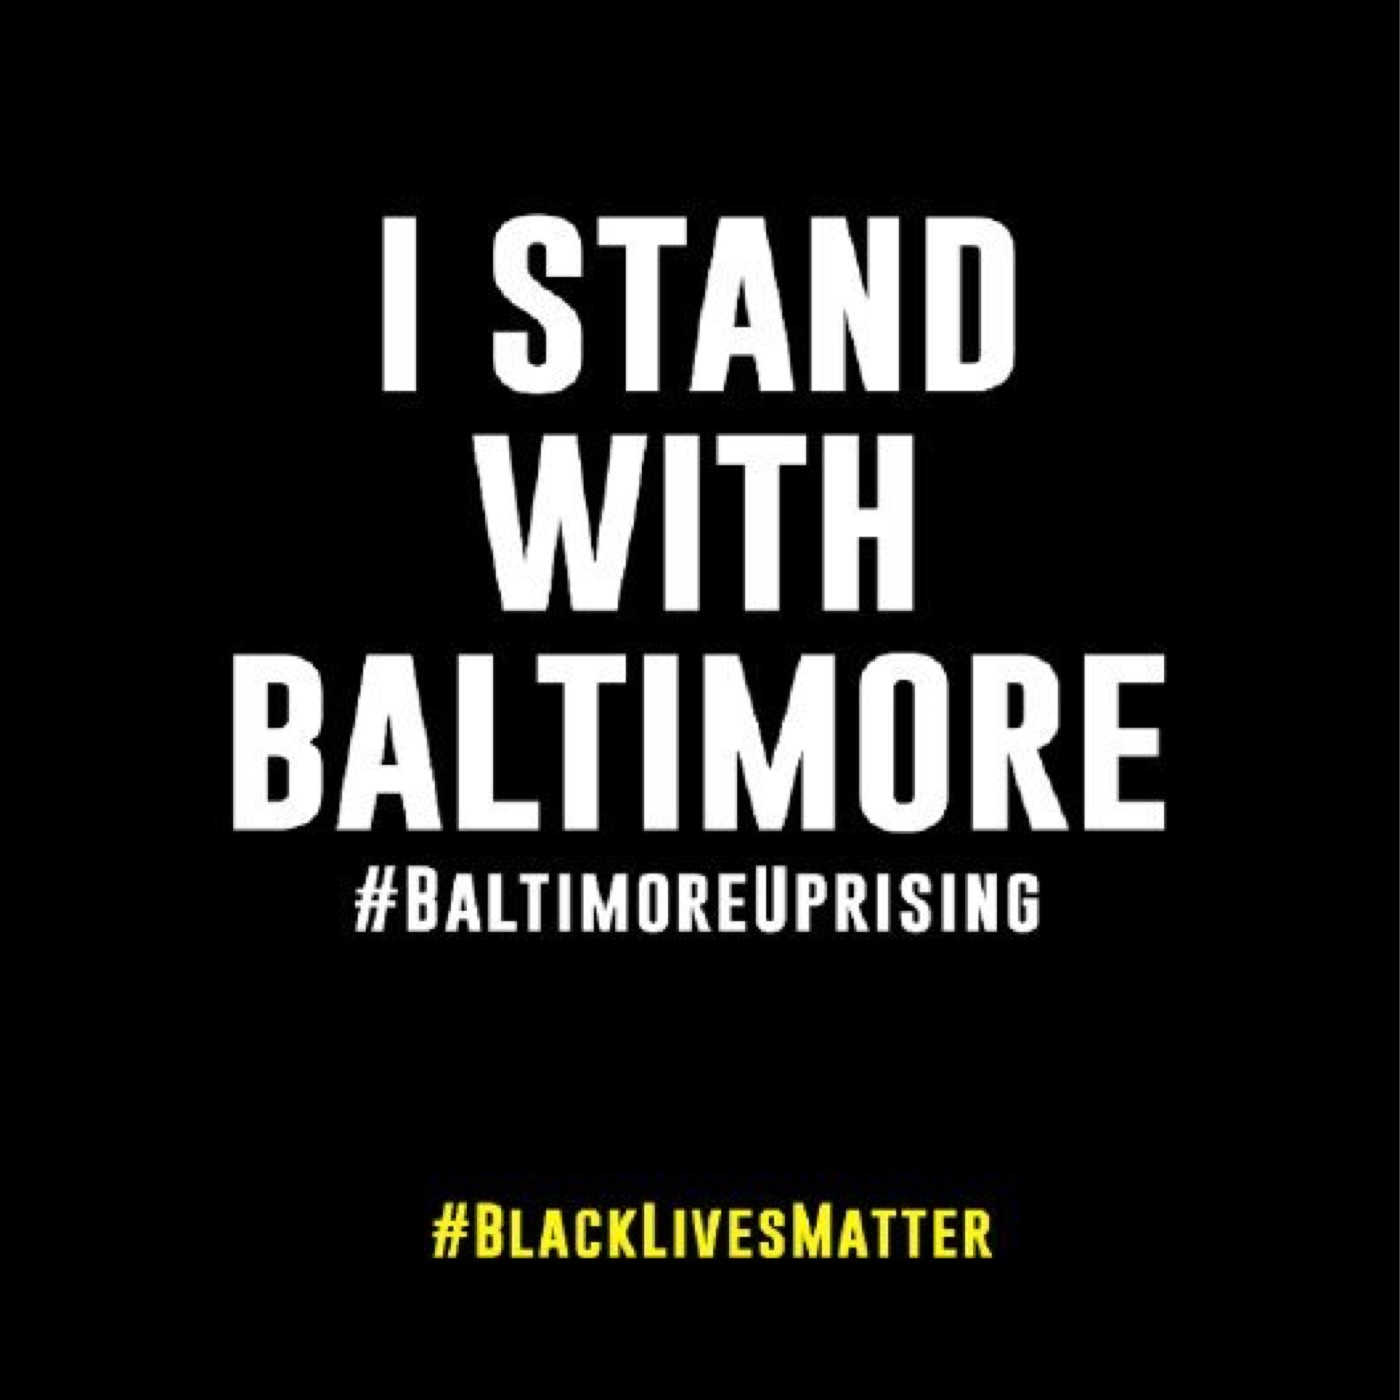 (2015/05/08) Continued injustice, continued response (#BaltimoreUprising)